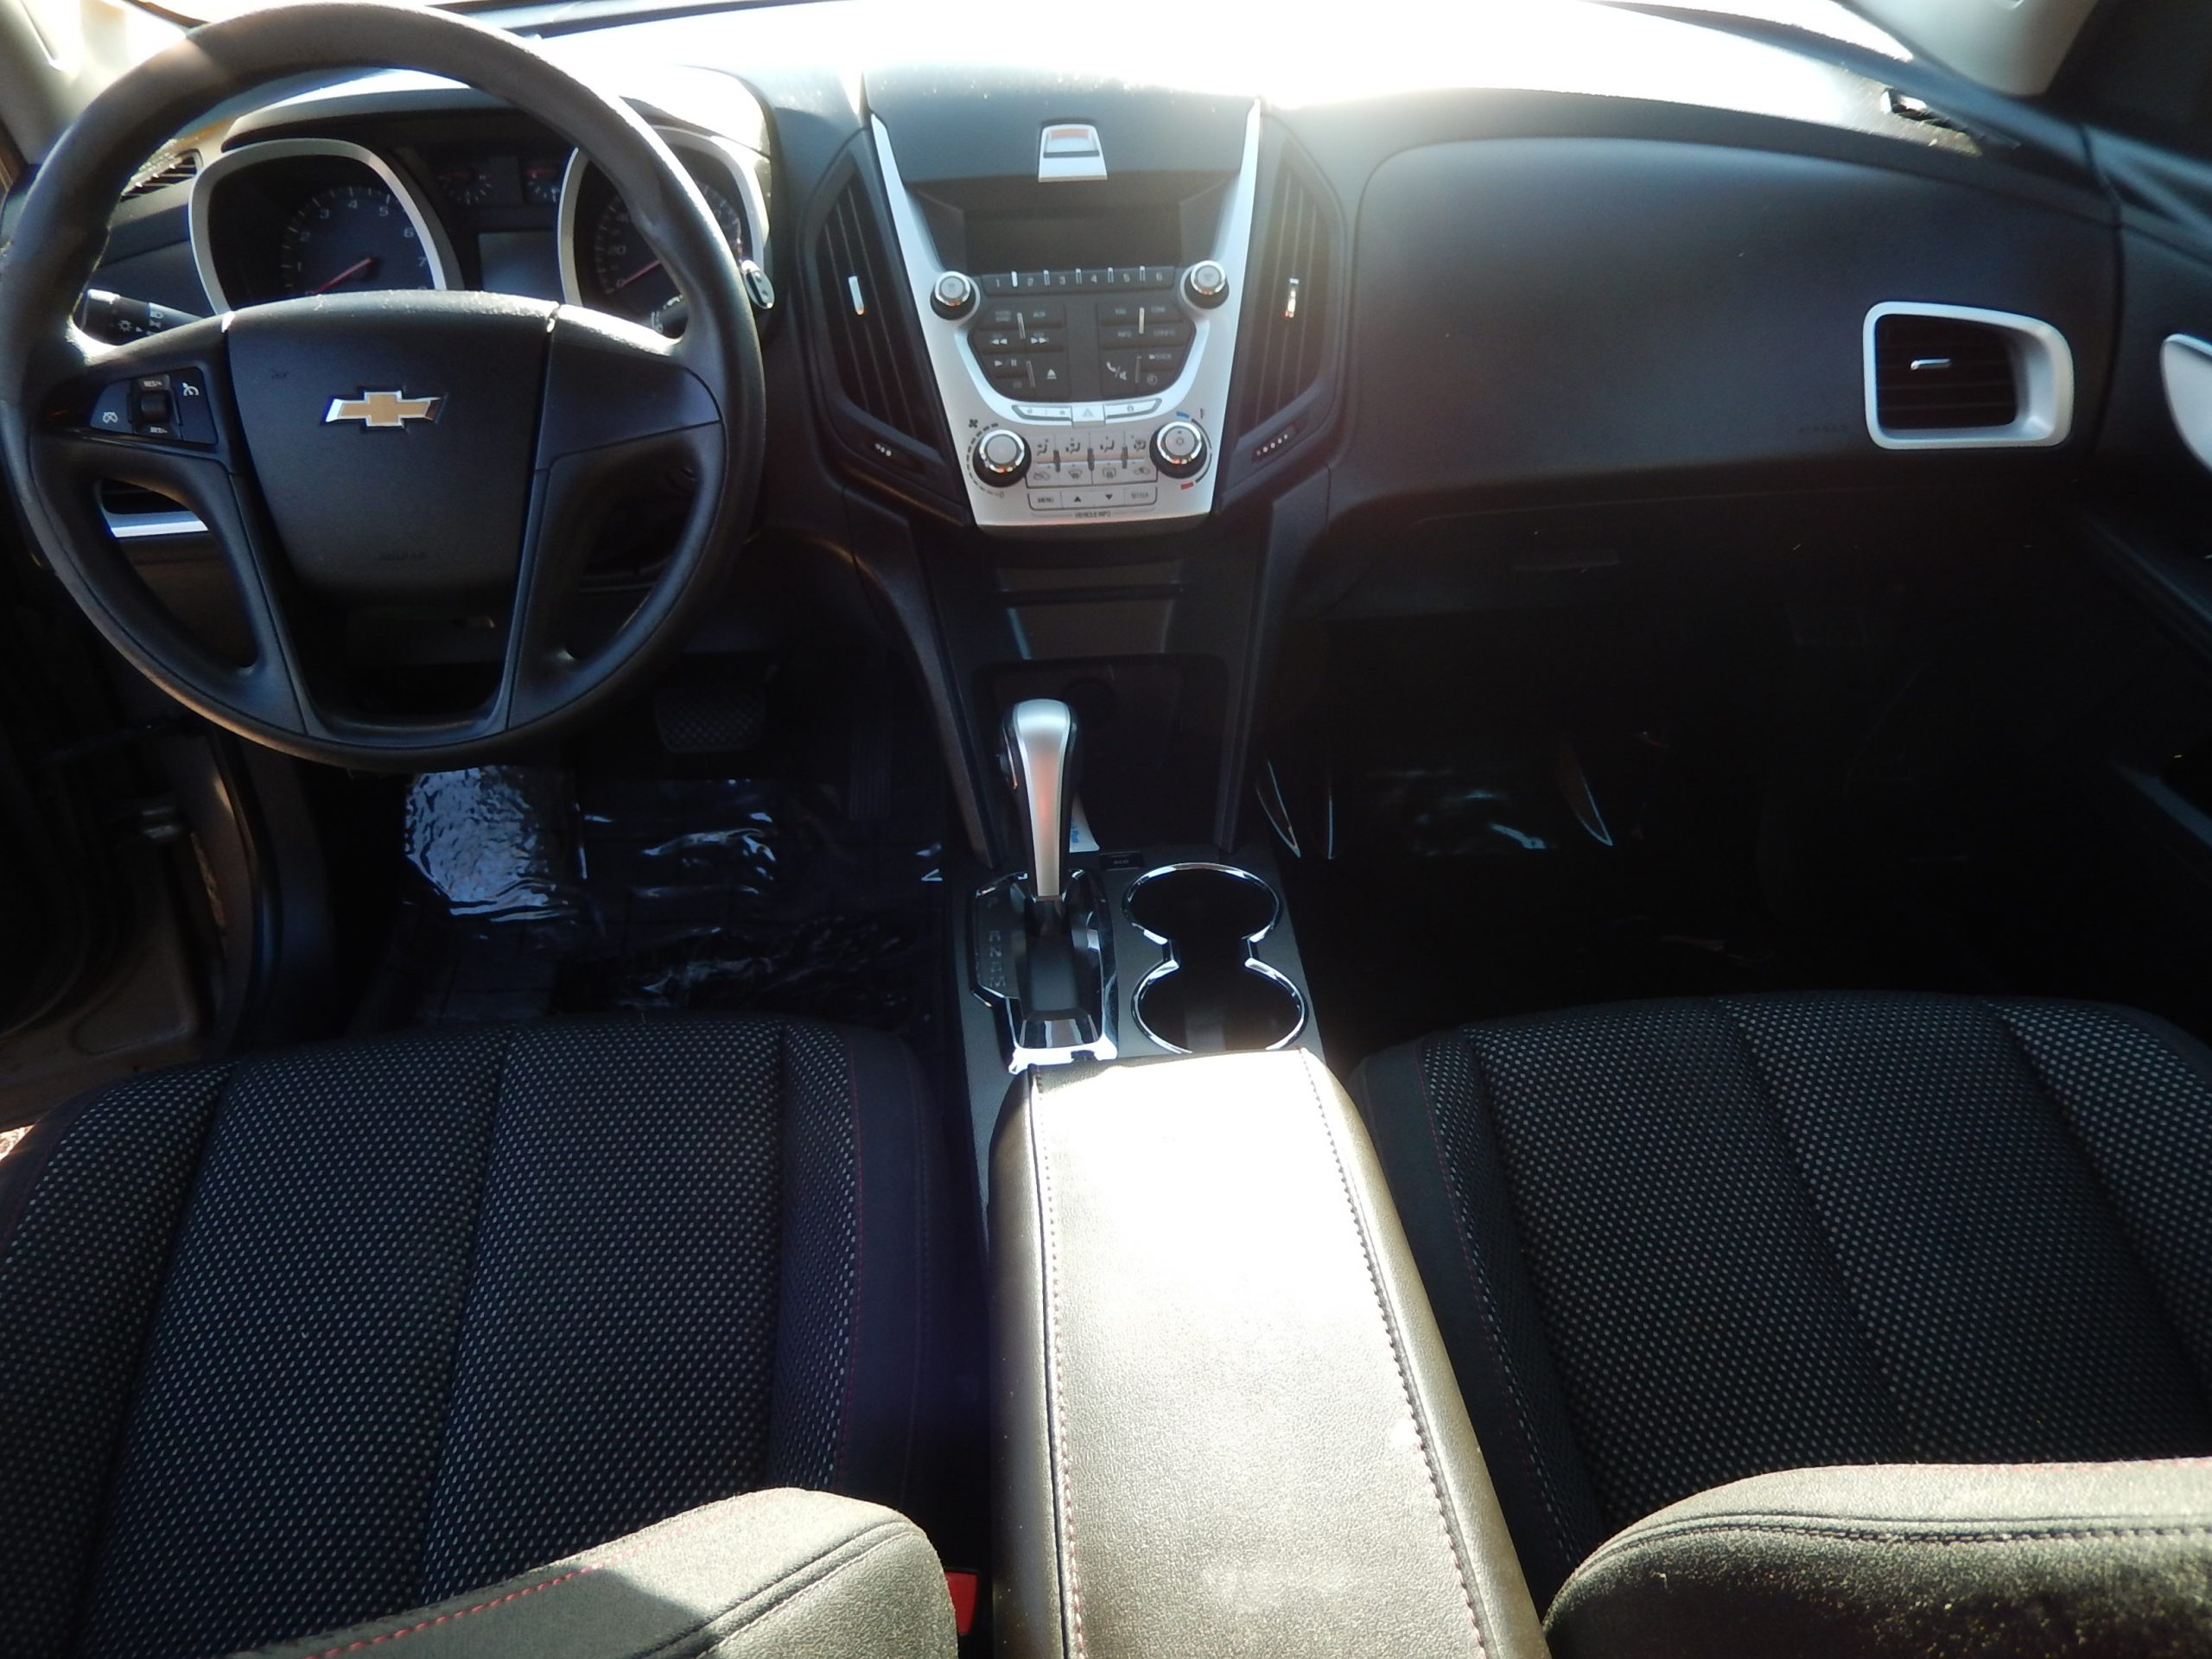 Used 2010 Chevrolet Equinox LT SUV for sale in